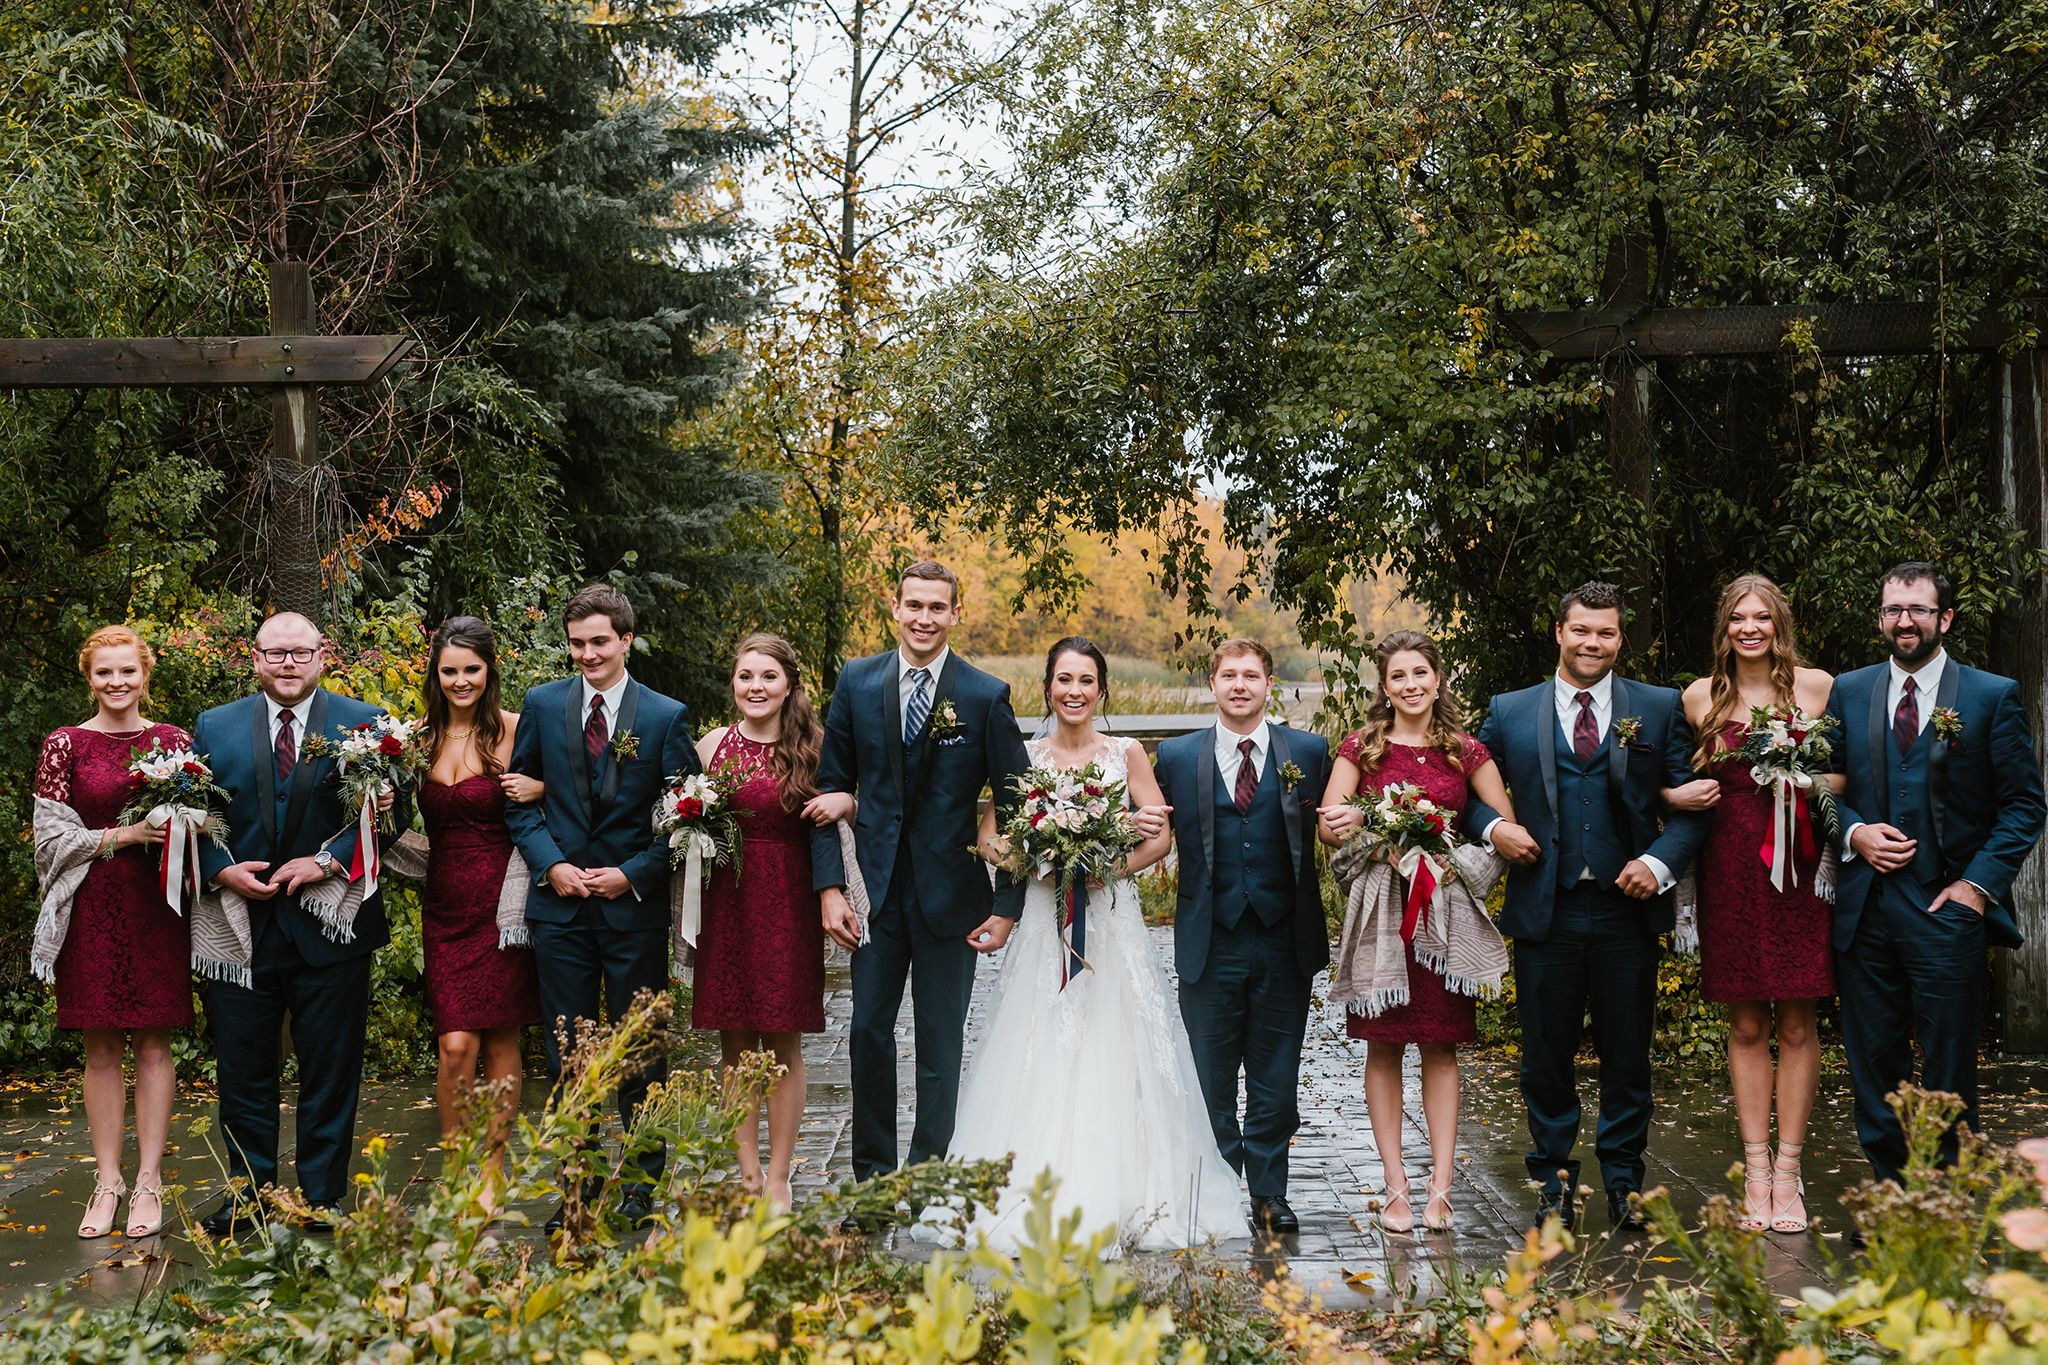 Wedding decorations yellow and blue november 2018 Banff Wedding Photographer Canmore Lake Louise Mobile Site in